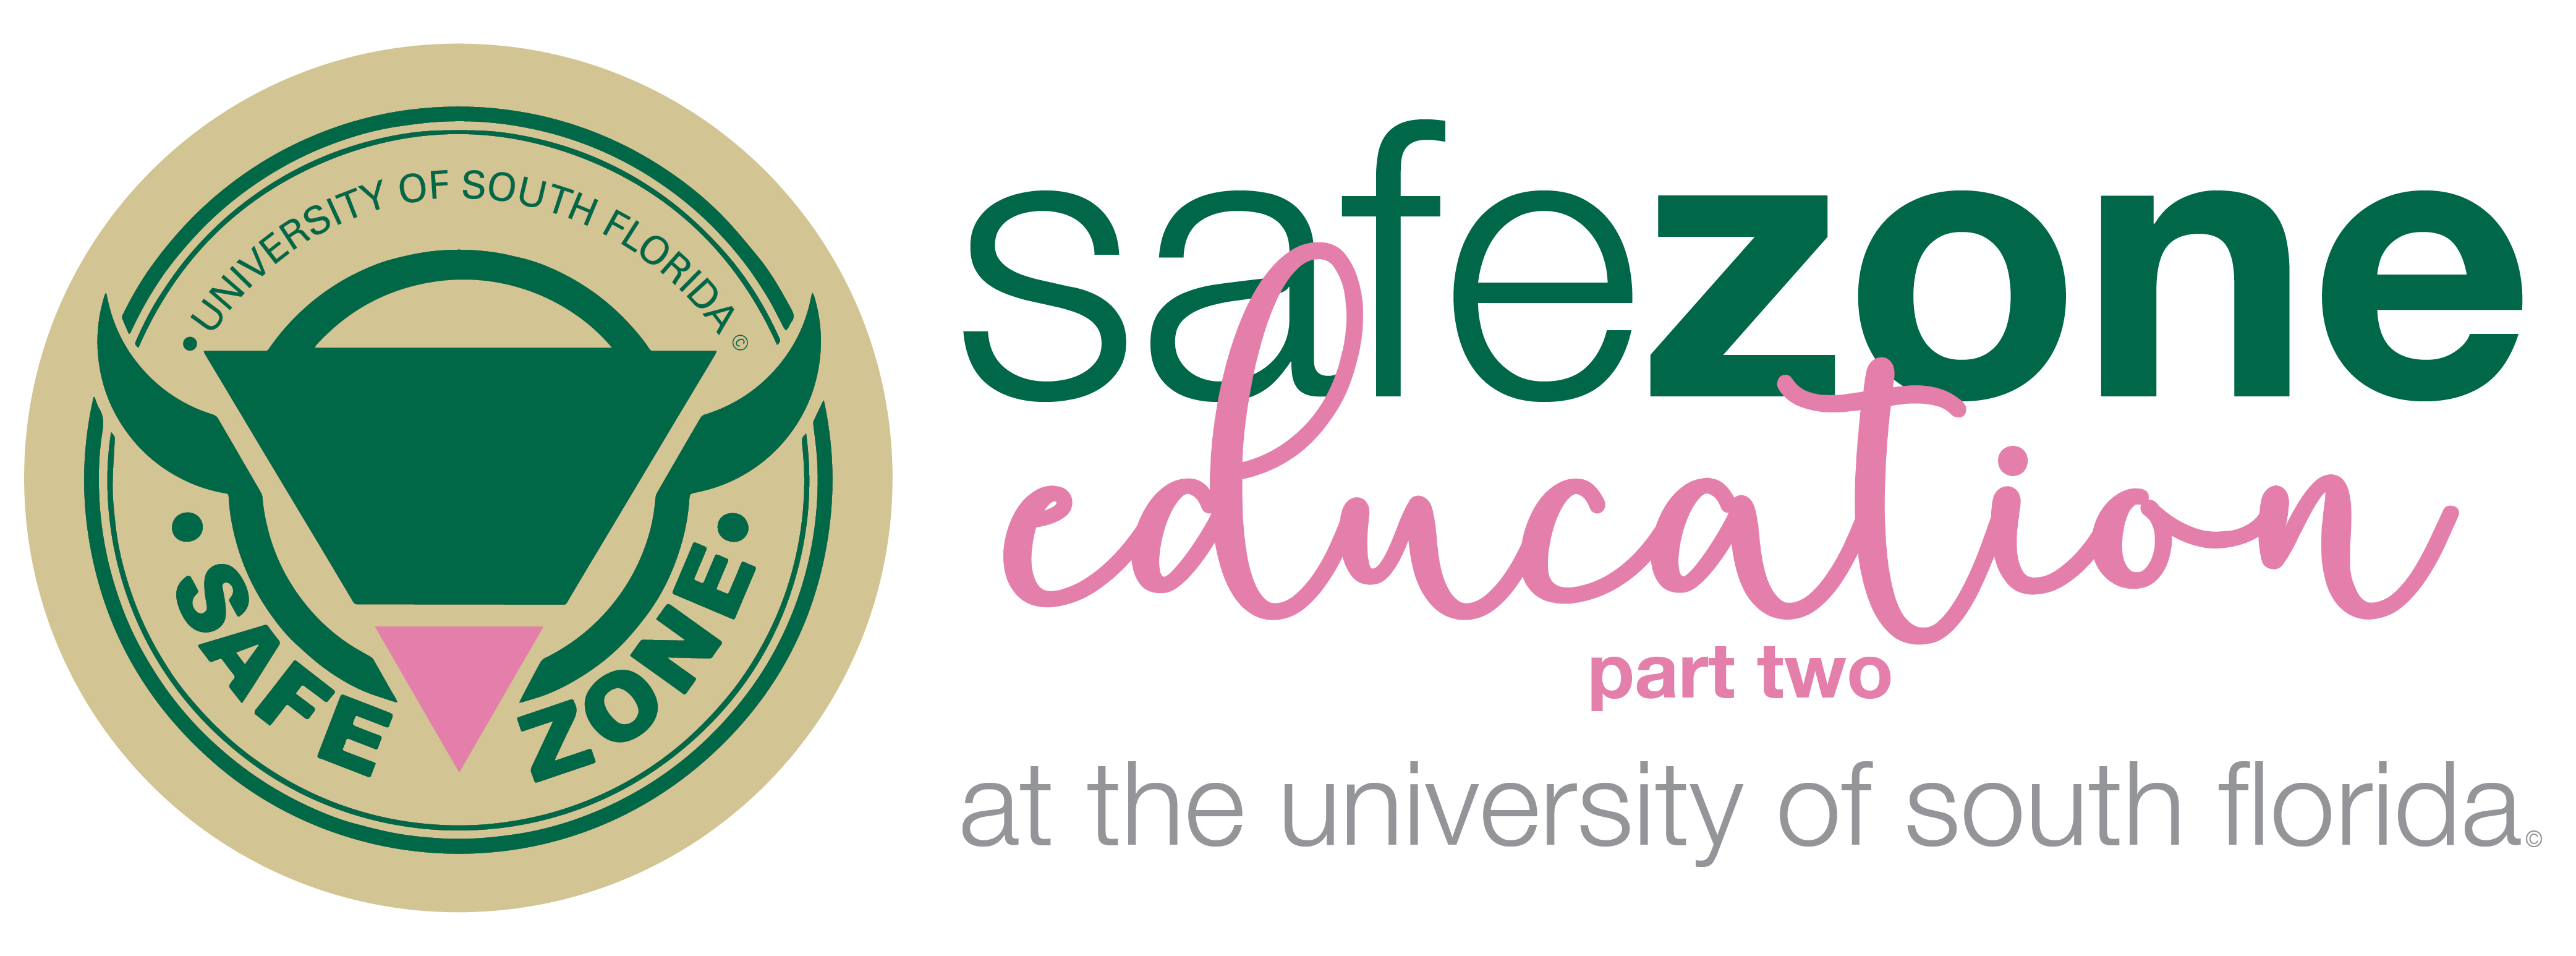 Safe Zone: Education Part Two